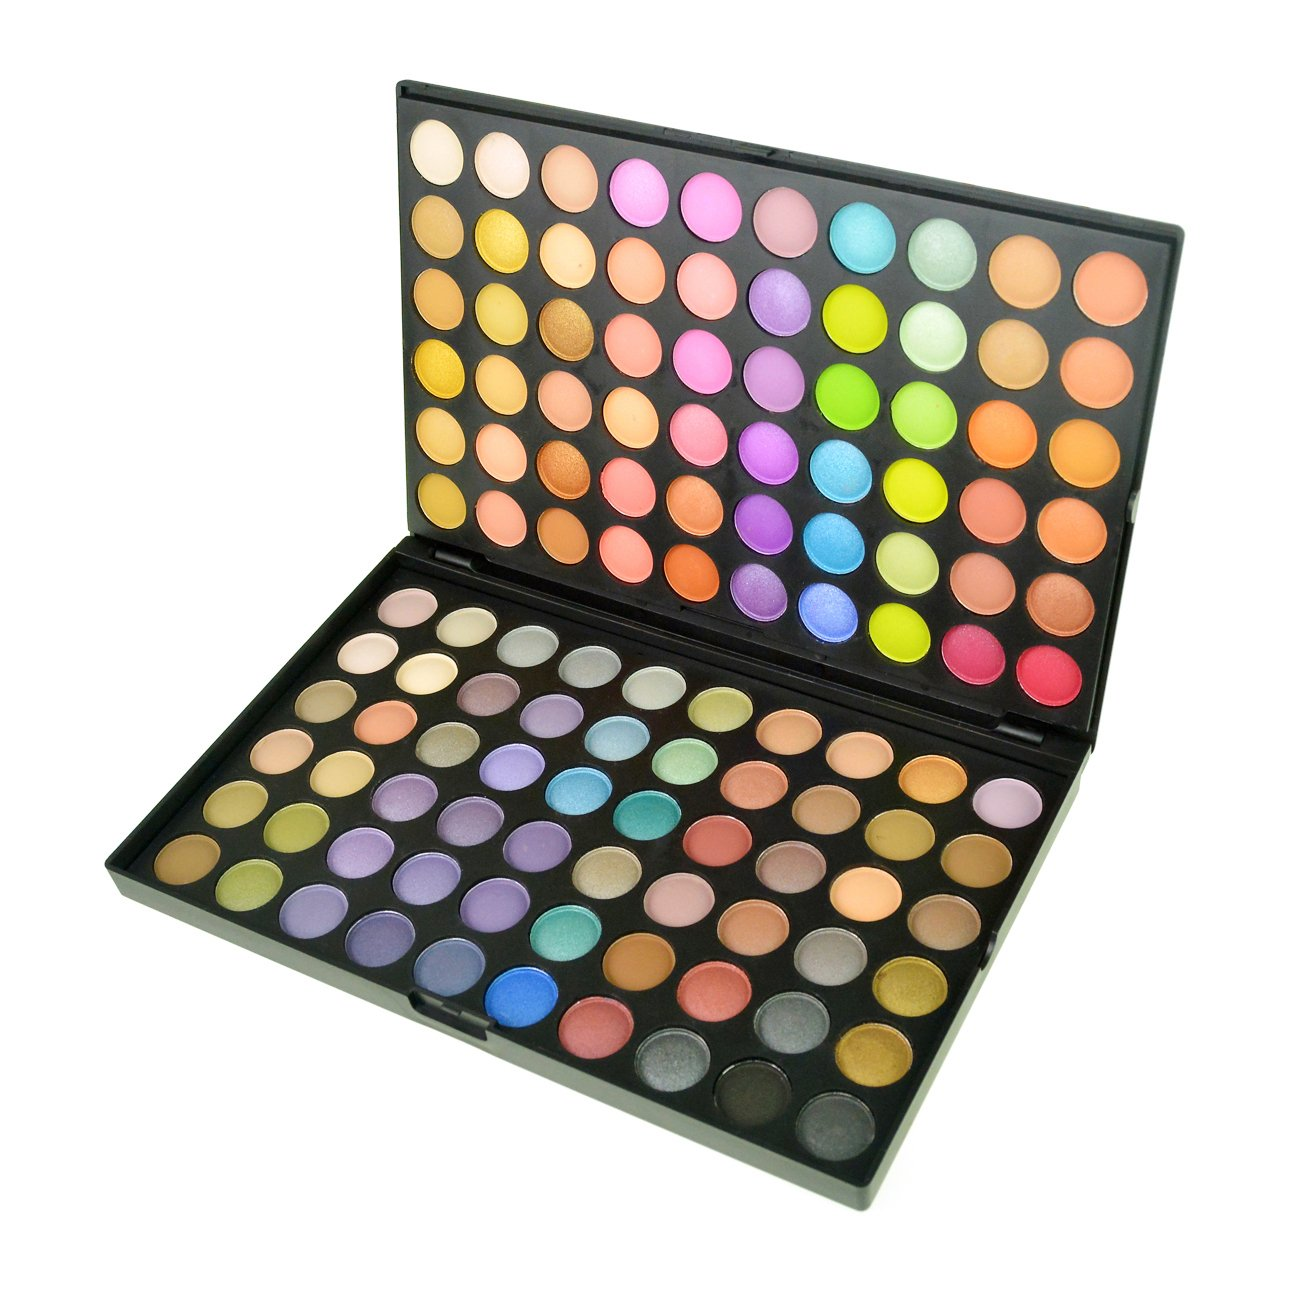 Jmkcoz Eye Shadow 120 Colors Eyeshadow Eye Shadow Palette Colors Makeup Kit Eye Color Palette Halloween Makeup Palette Matte and Shimmer Highly Pigmented Professional Cosmetic Jmkcoz001